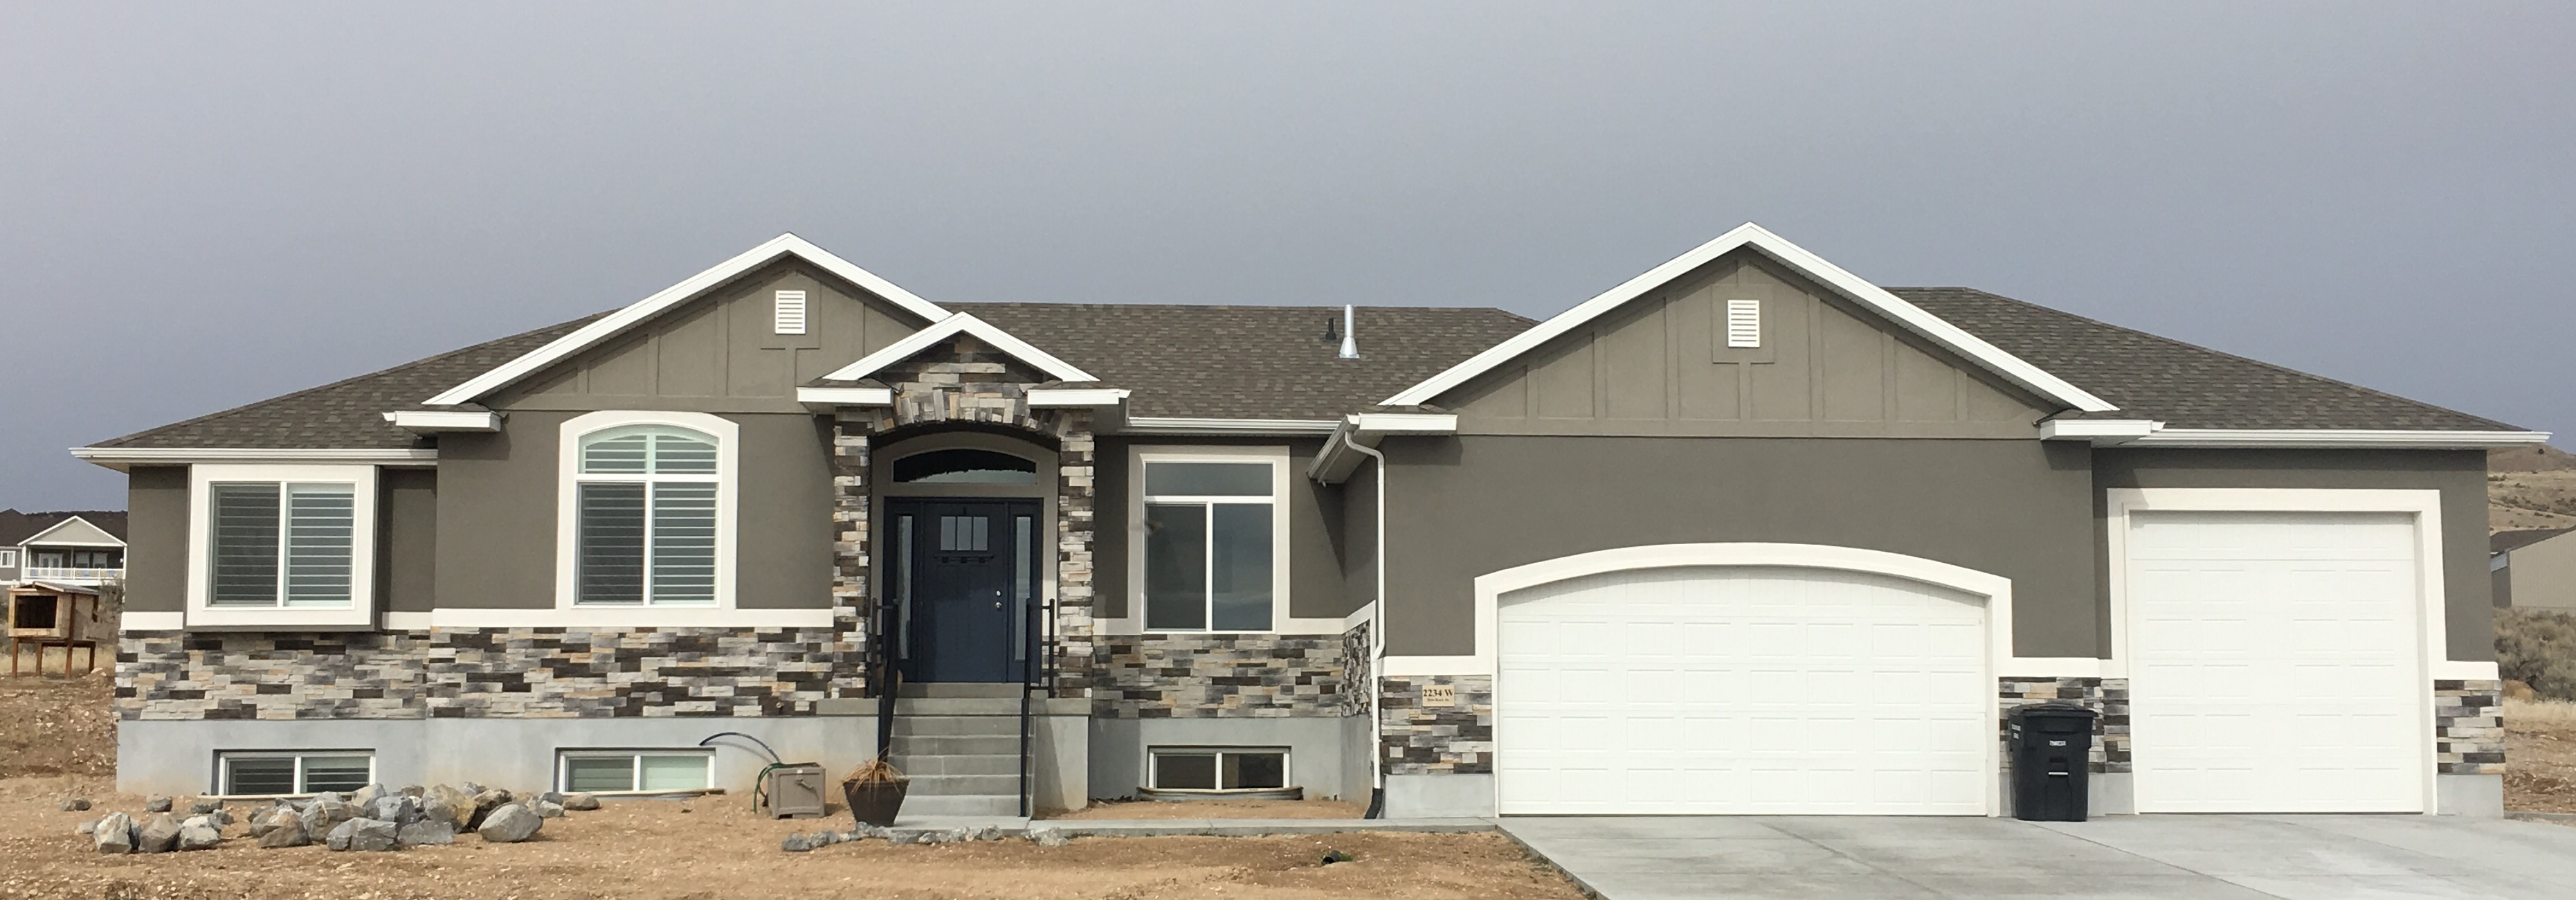 Mather New Home Floor Plan   Tooele, Utah   Randy Young Construction